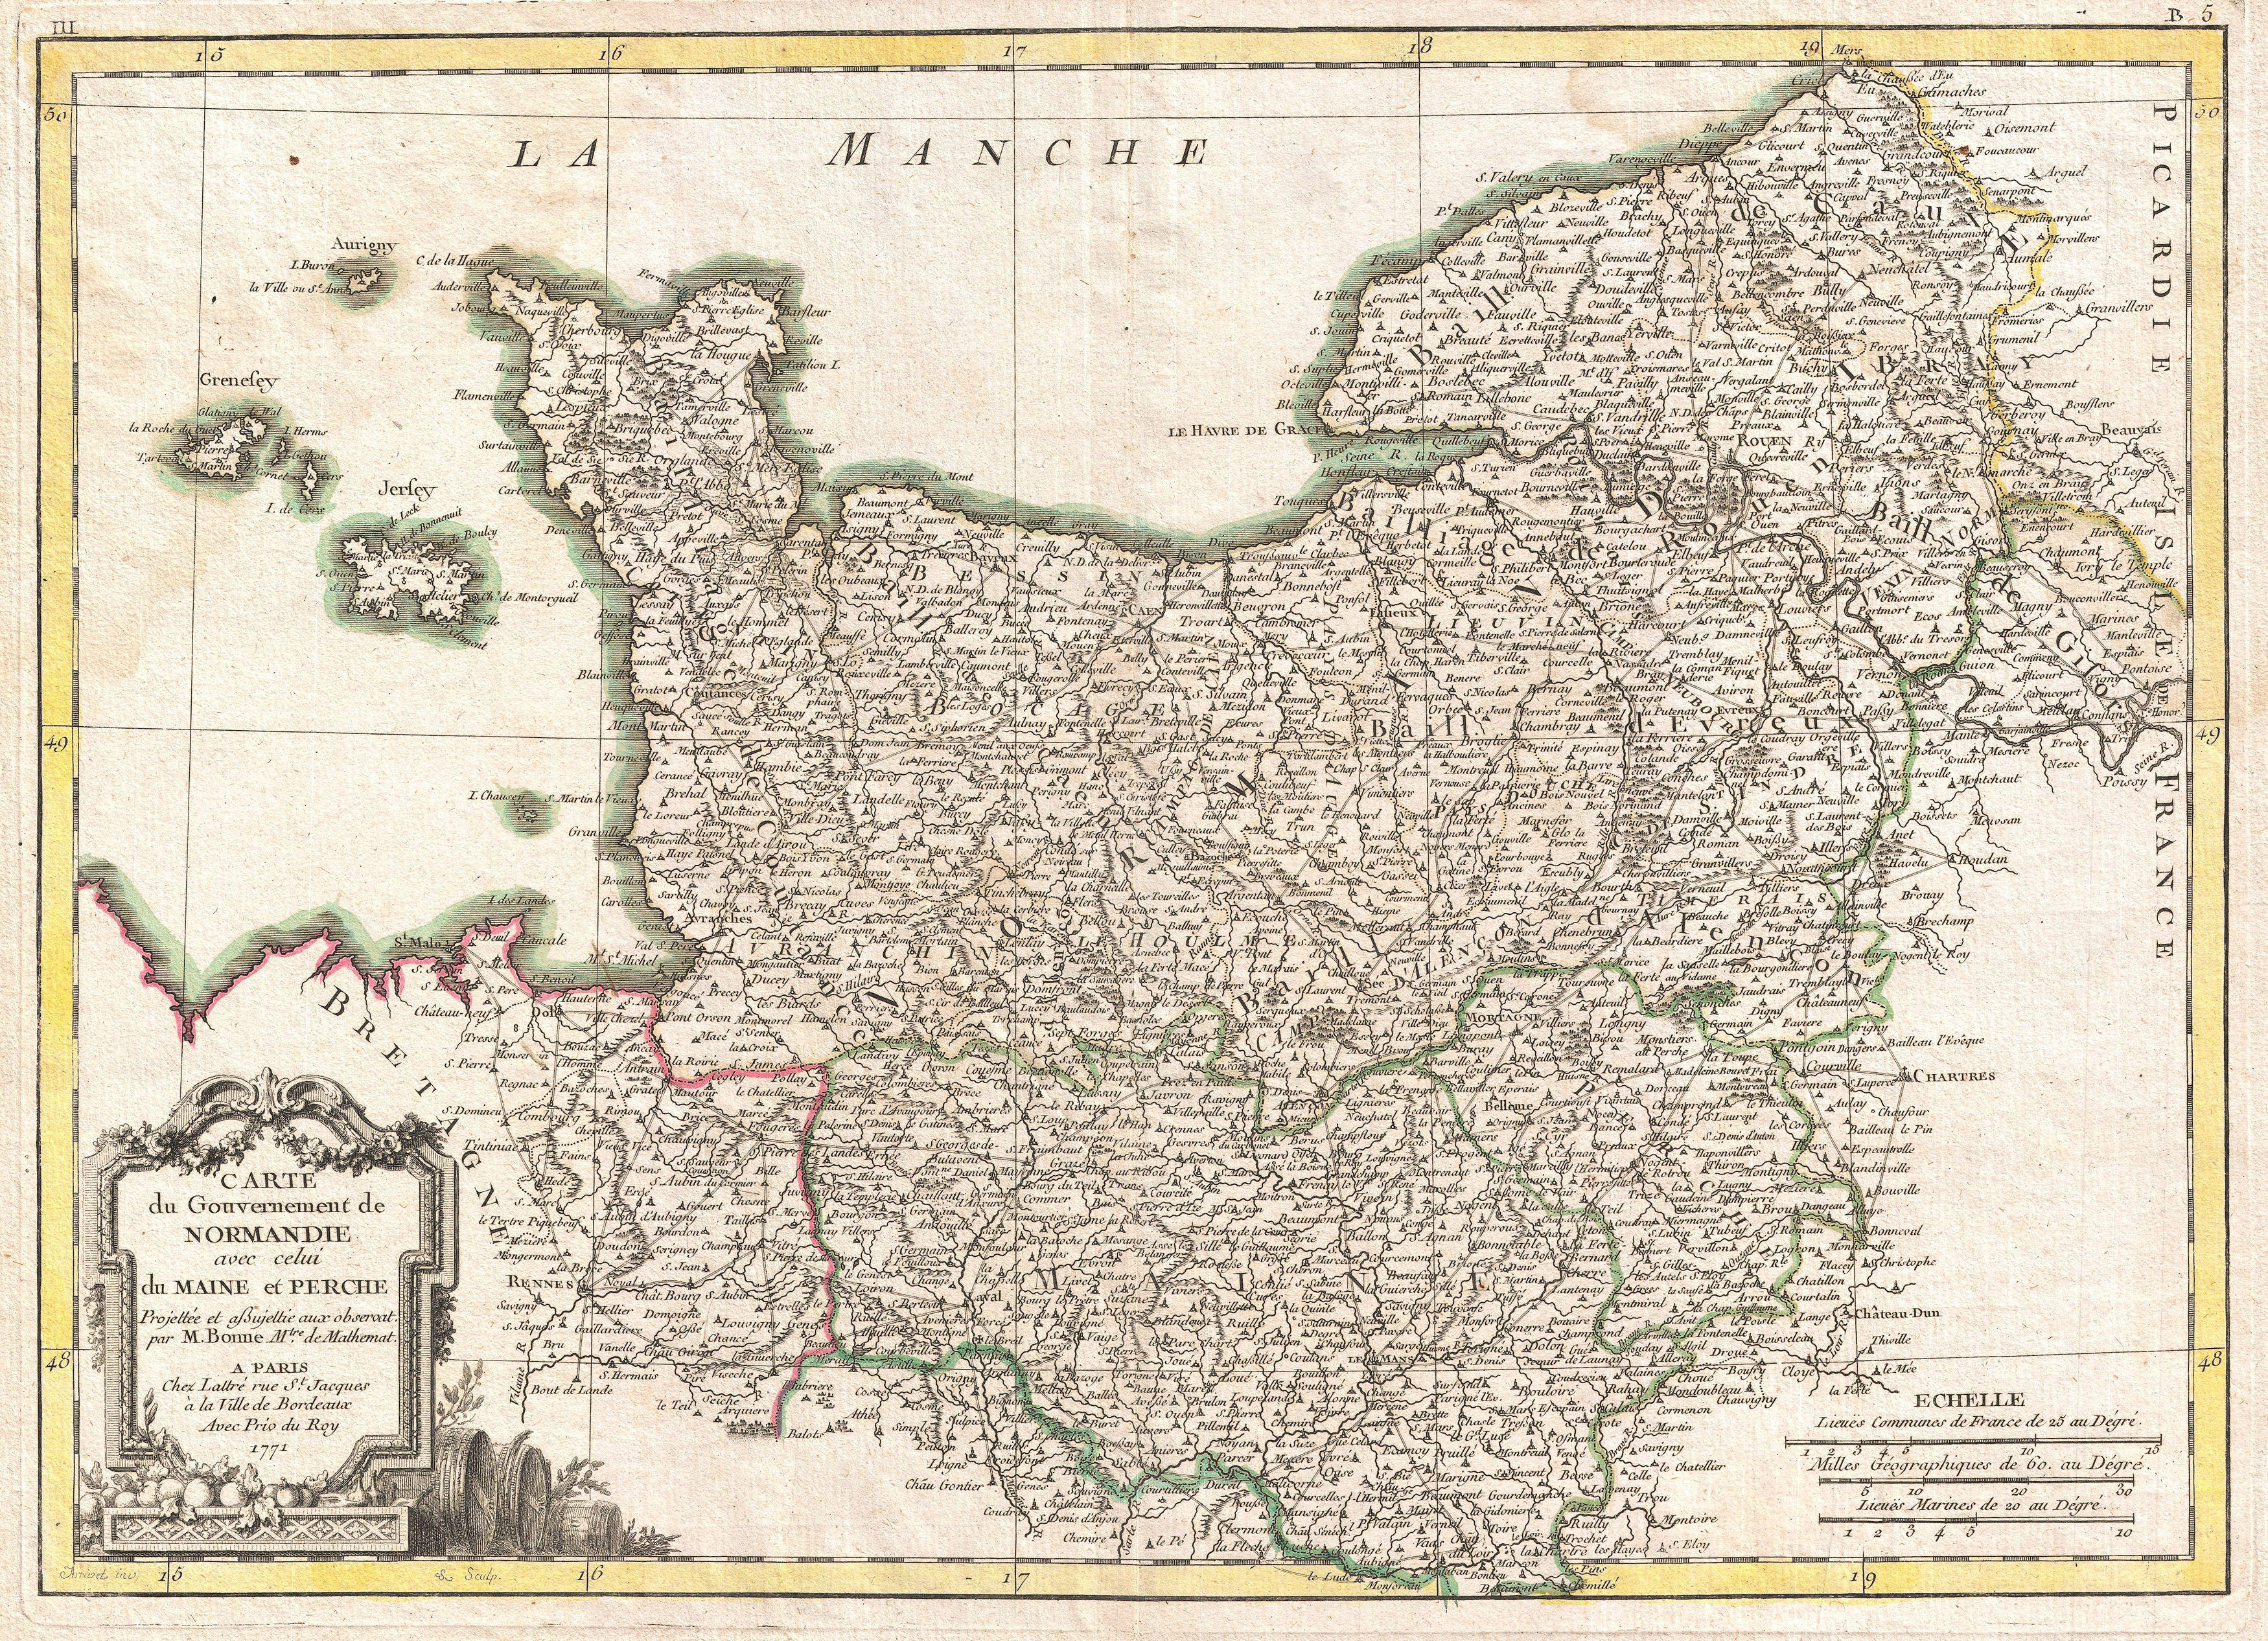 Map Of Normandy France Detailed.File 1771 Bonne Map Of Normandy France Geographicus Normandie